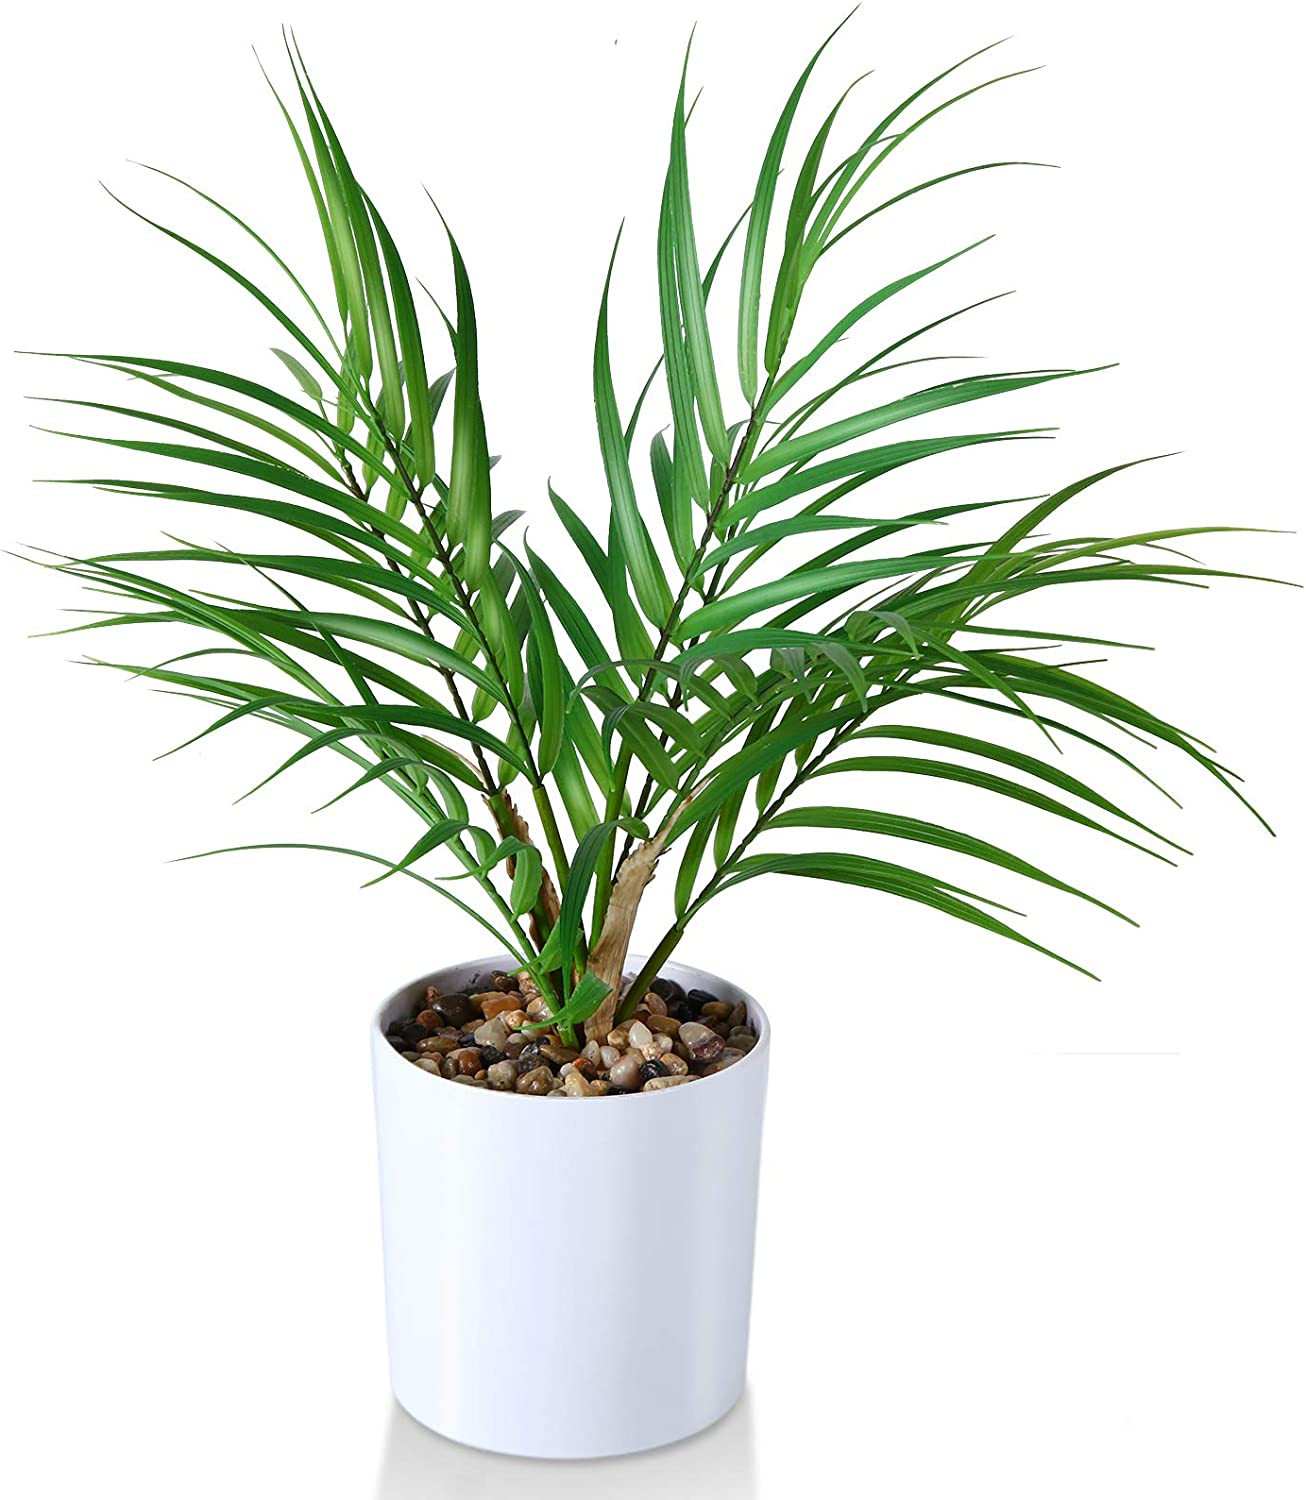 Kazeila Small Artificial Paradise Palm Tree 16 Inch Fake Areca Palm Plant,Faux Desk Plant in Pot for Indoor Outdoor Home Office Any Room Decor,Perfect Housewarming Gift